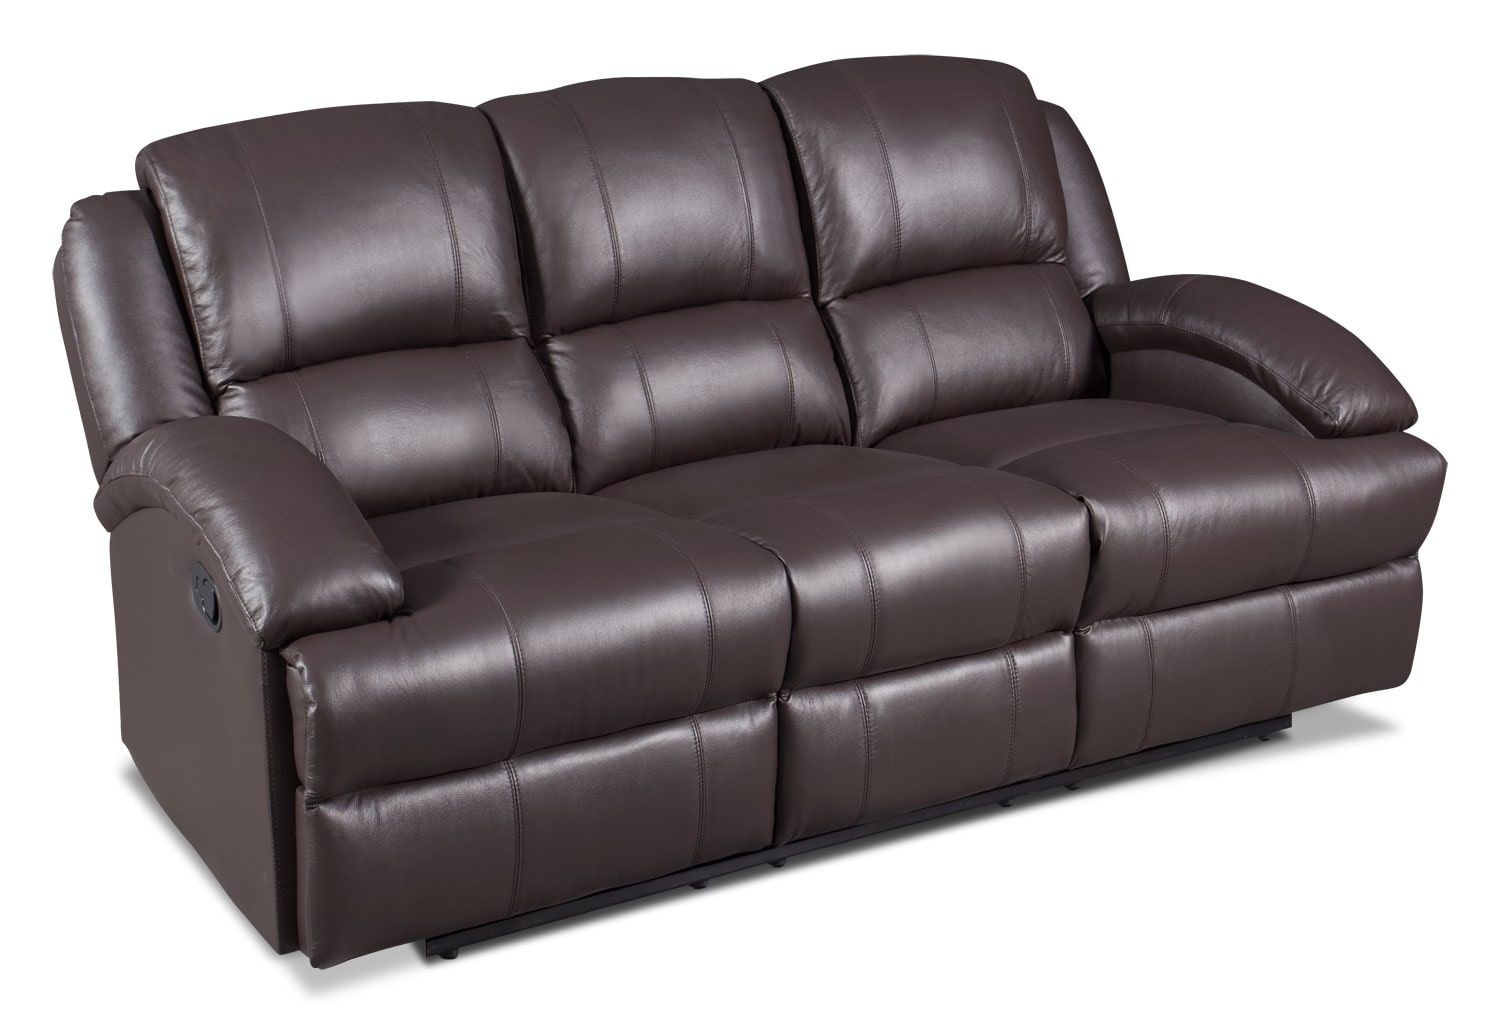 Real leather sofas the real leather sofa bed regarding for Sofa actual